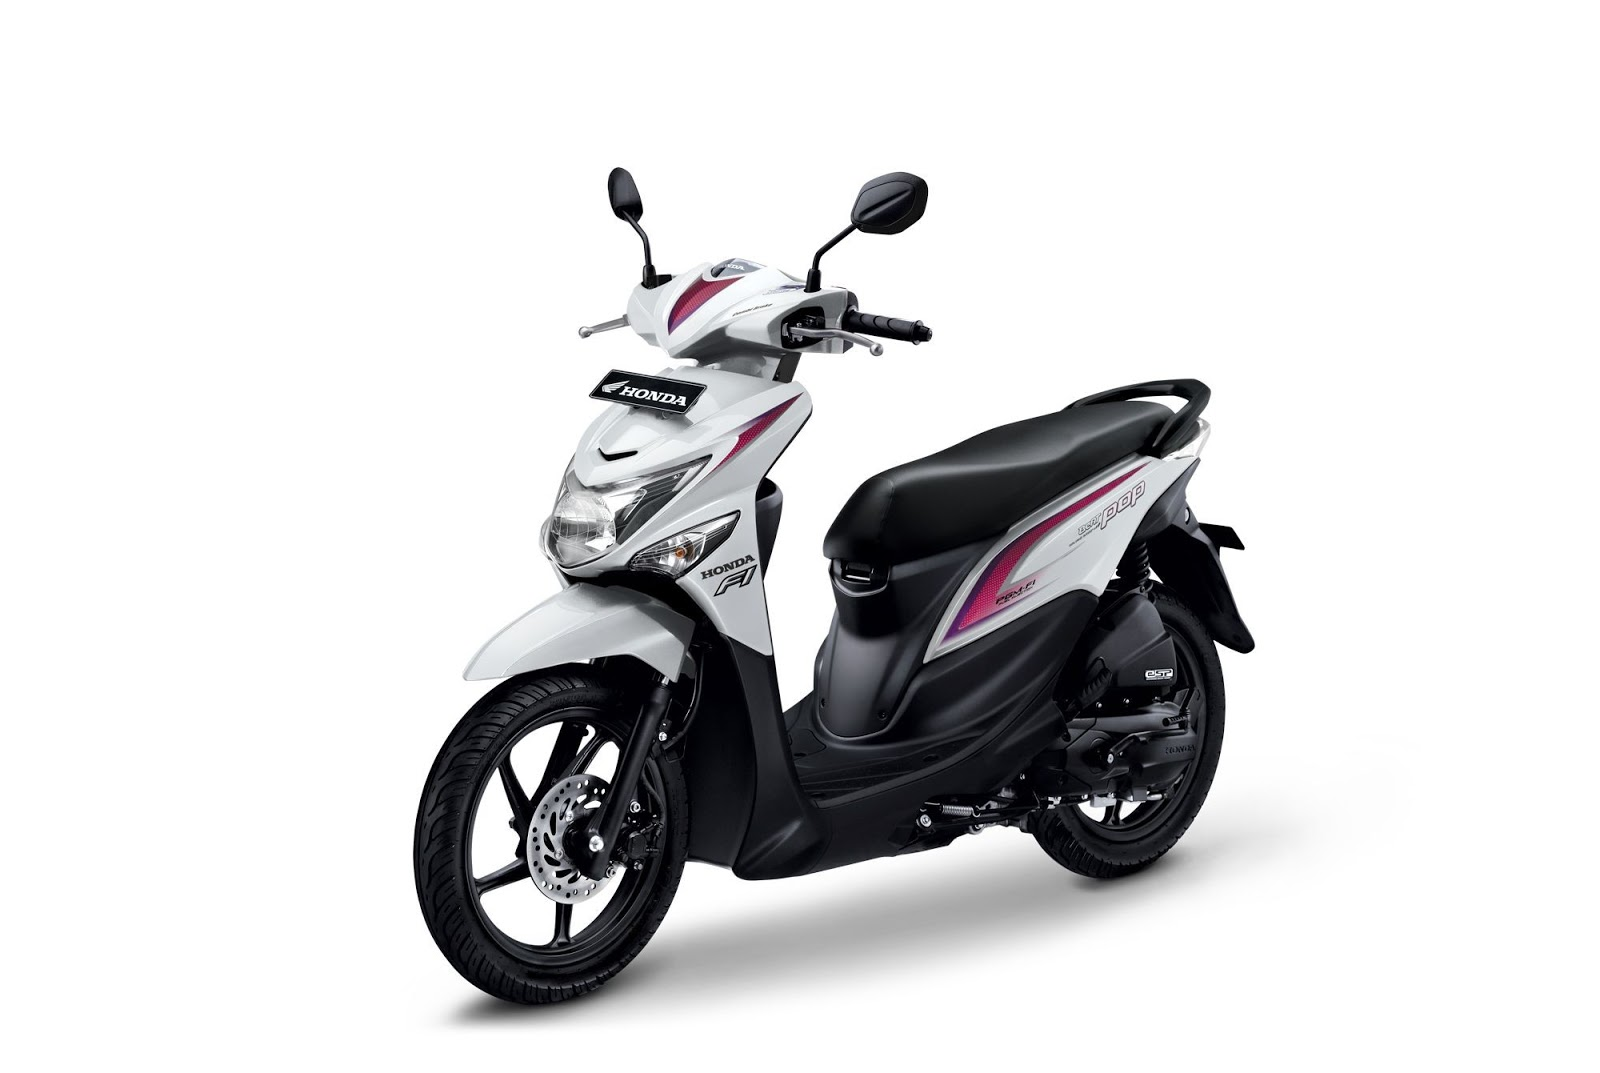 Daftar Harga Motor Honda Beat Pop All New Sporty Esp Cbs Garage Black Brebes Dealer Resmi Nusantara Jaya Purwokerto